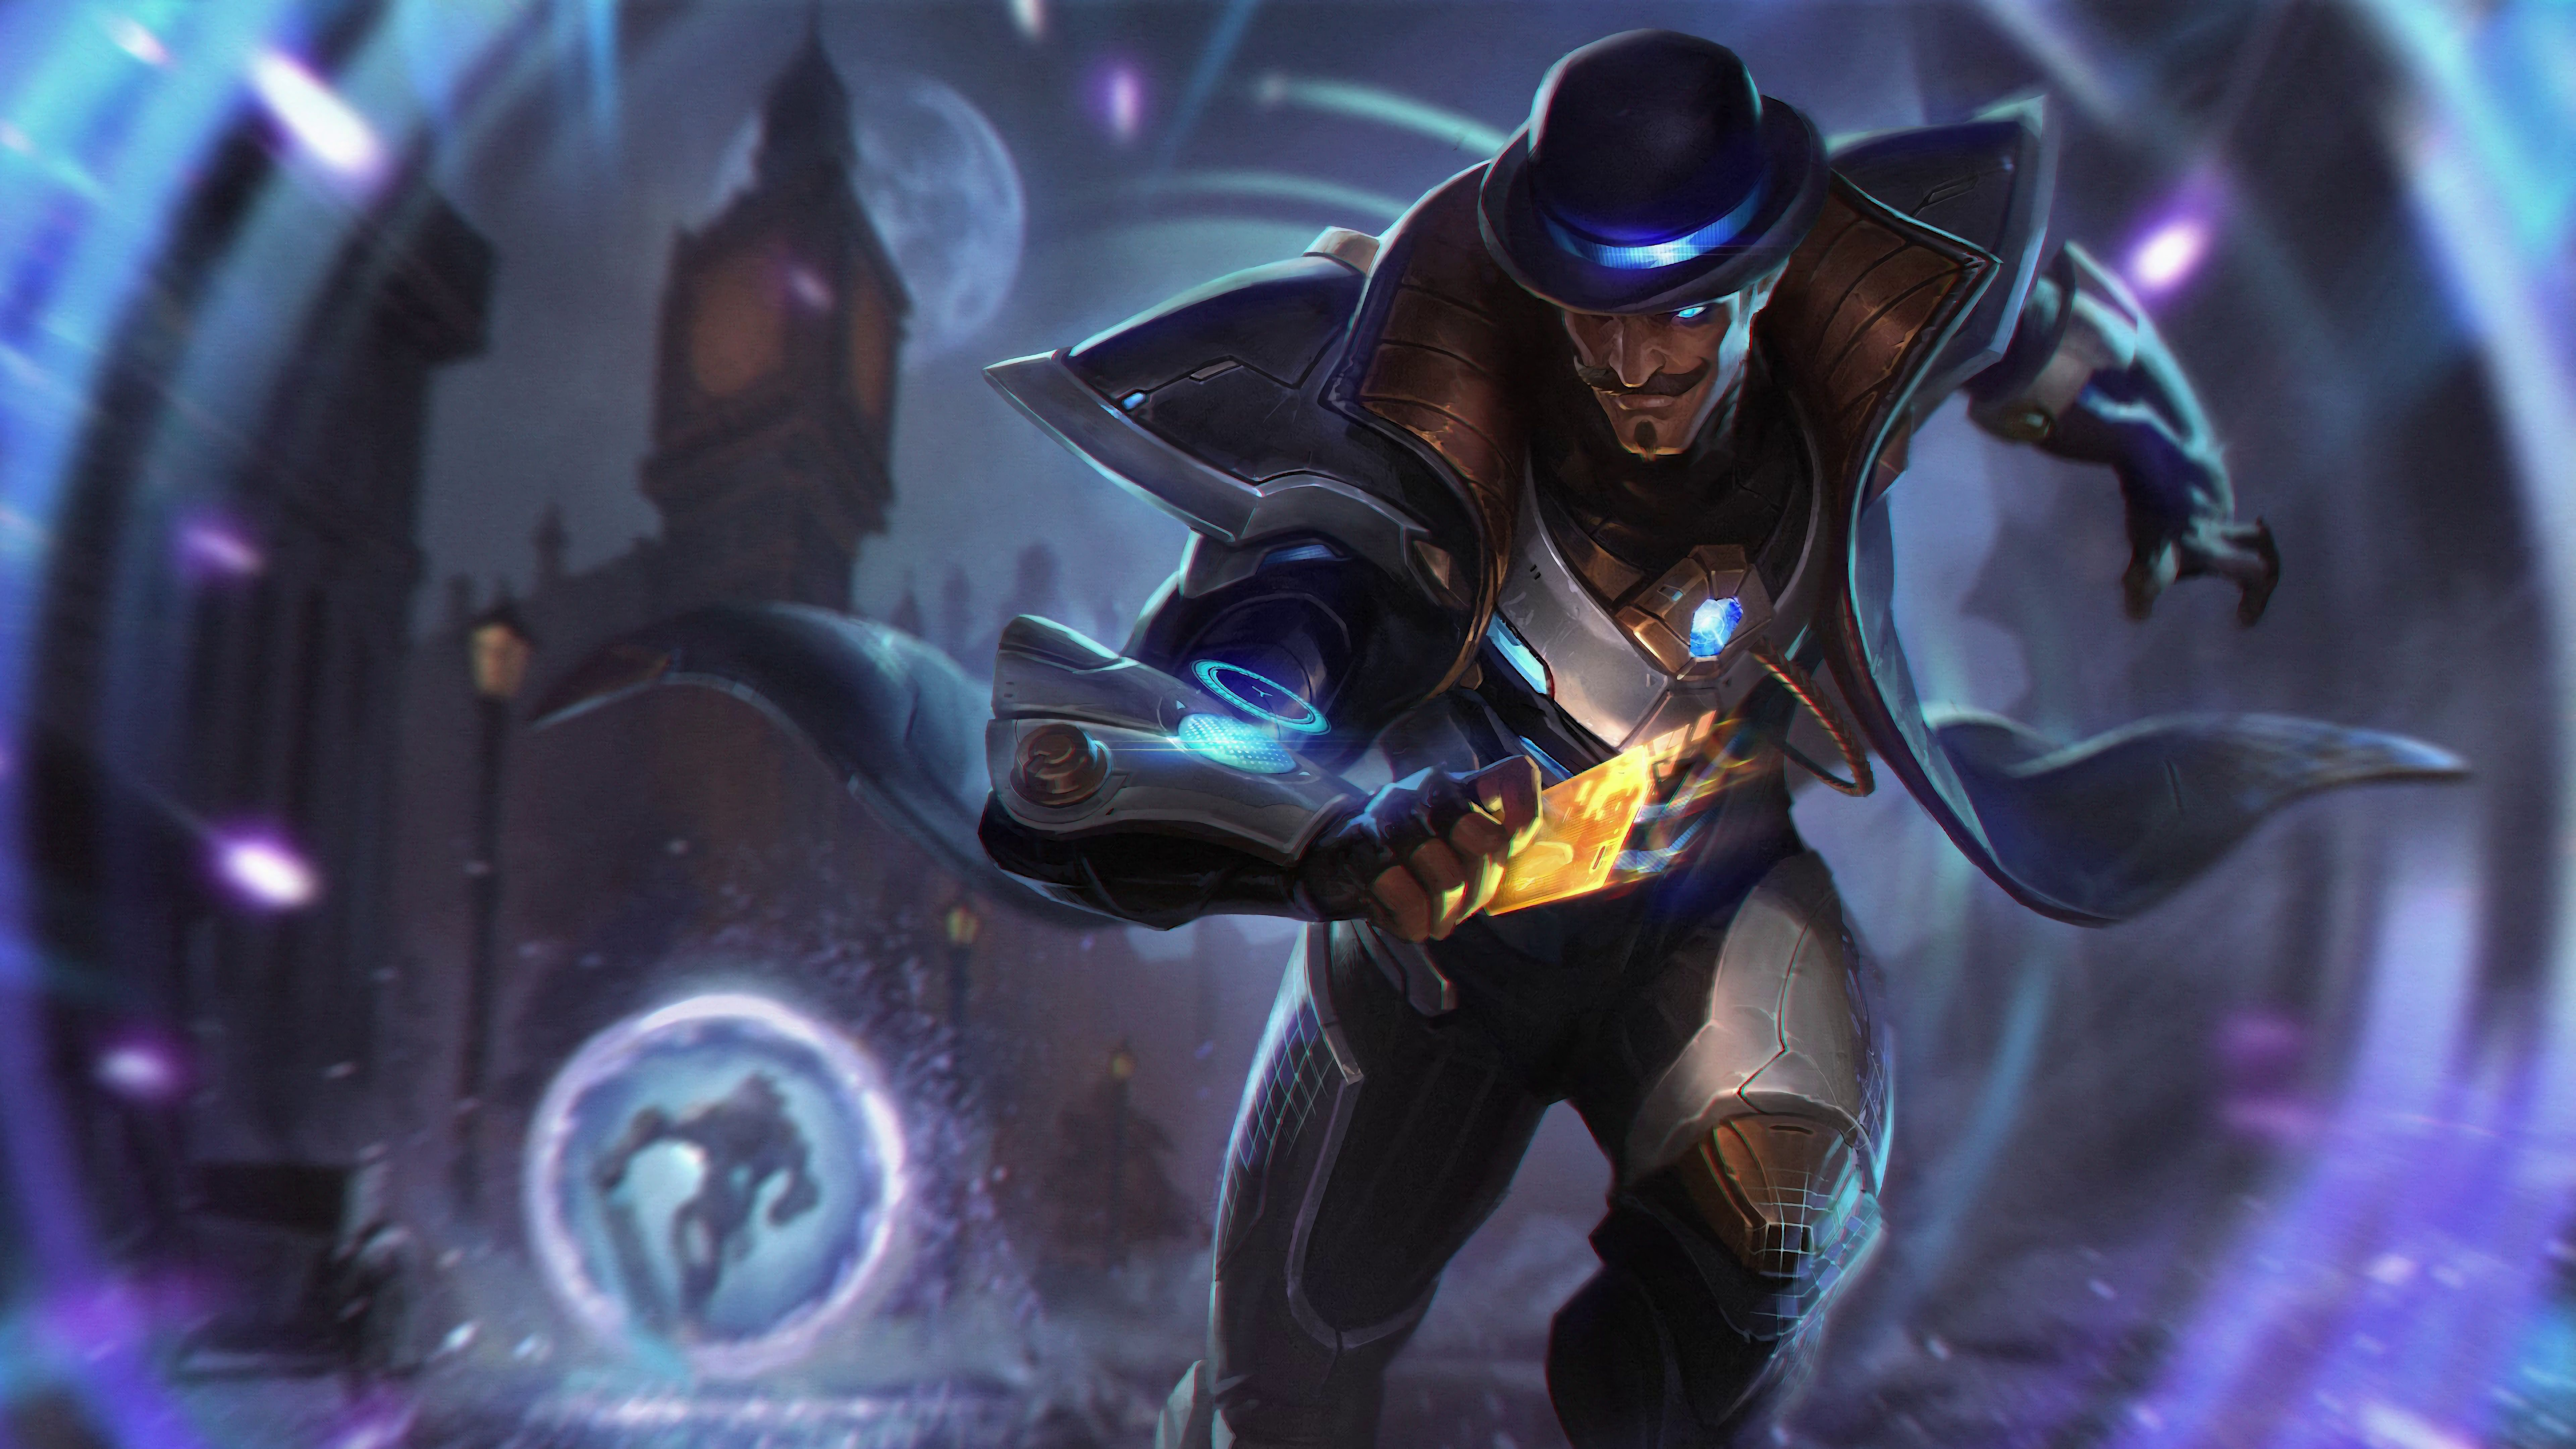 Twisted Fate Skins League Of Legends Game Hd Games 4k Wallpapers